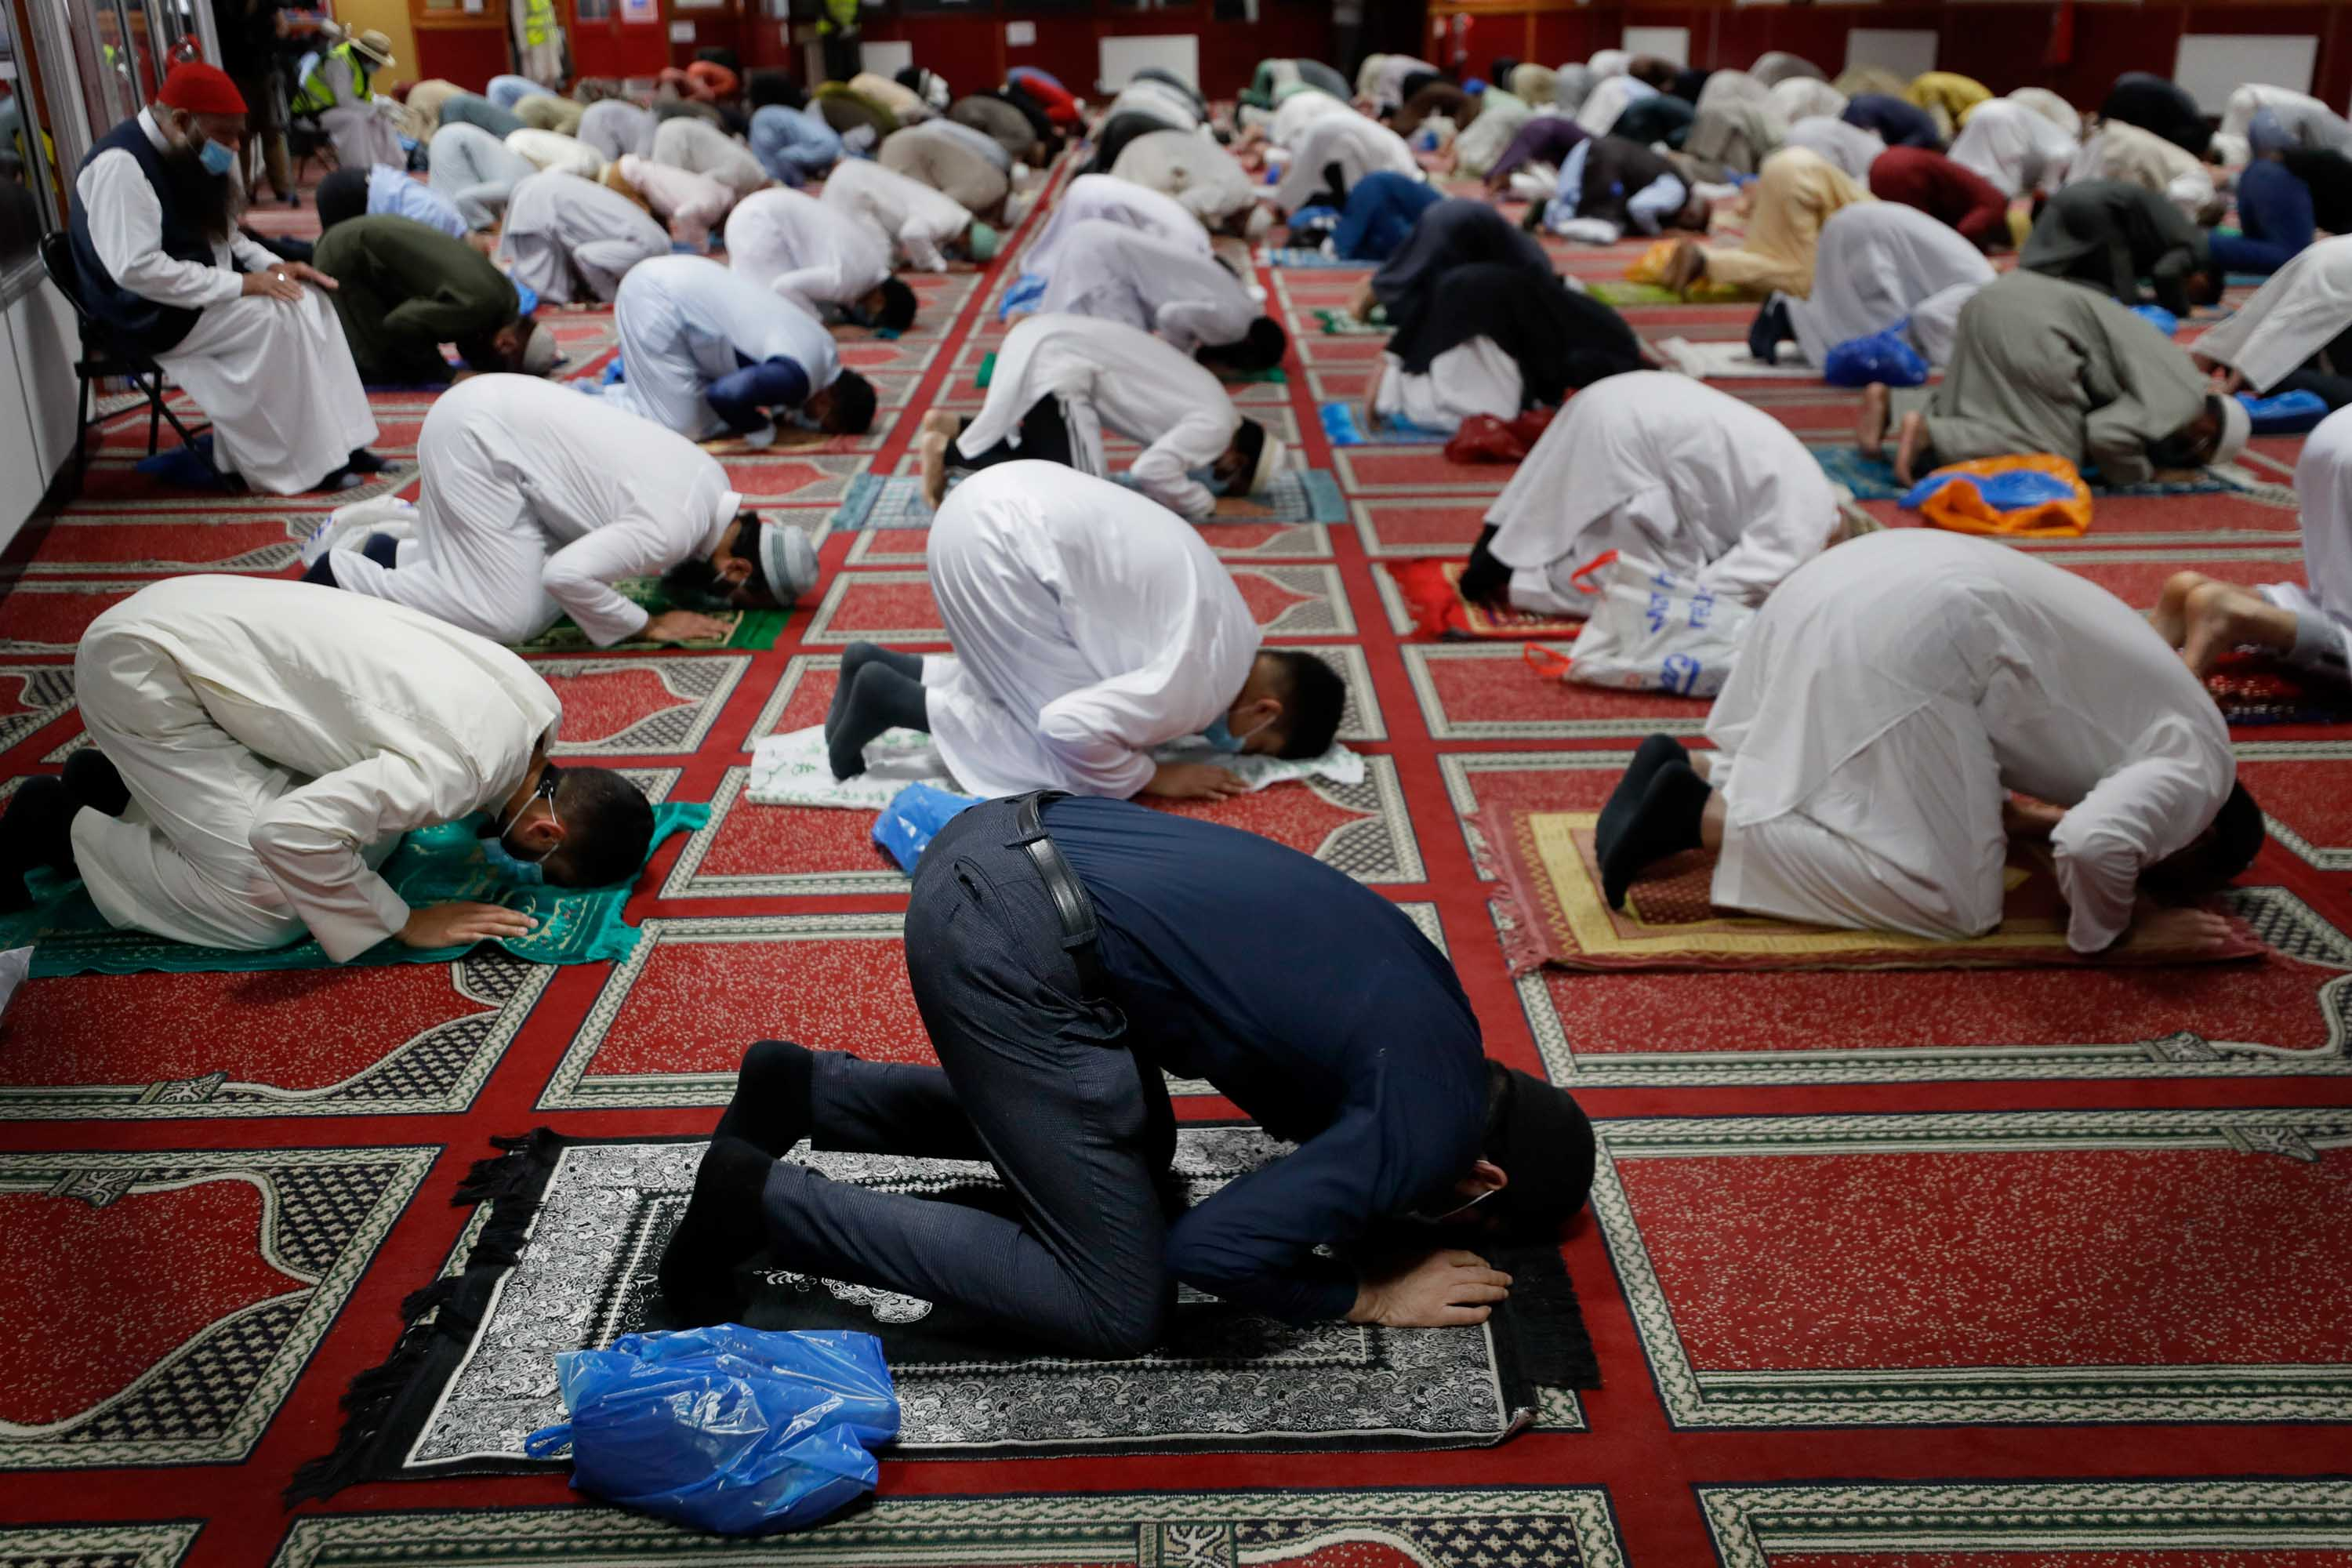 What is Eid al-Adha, and how is it being celebrated during the pandemic?